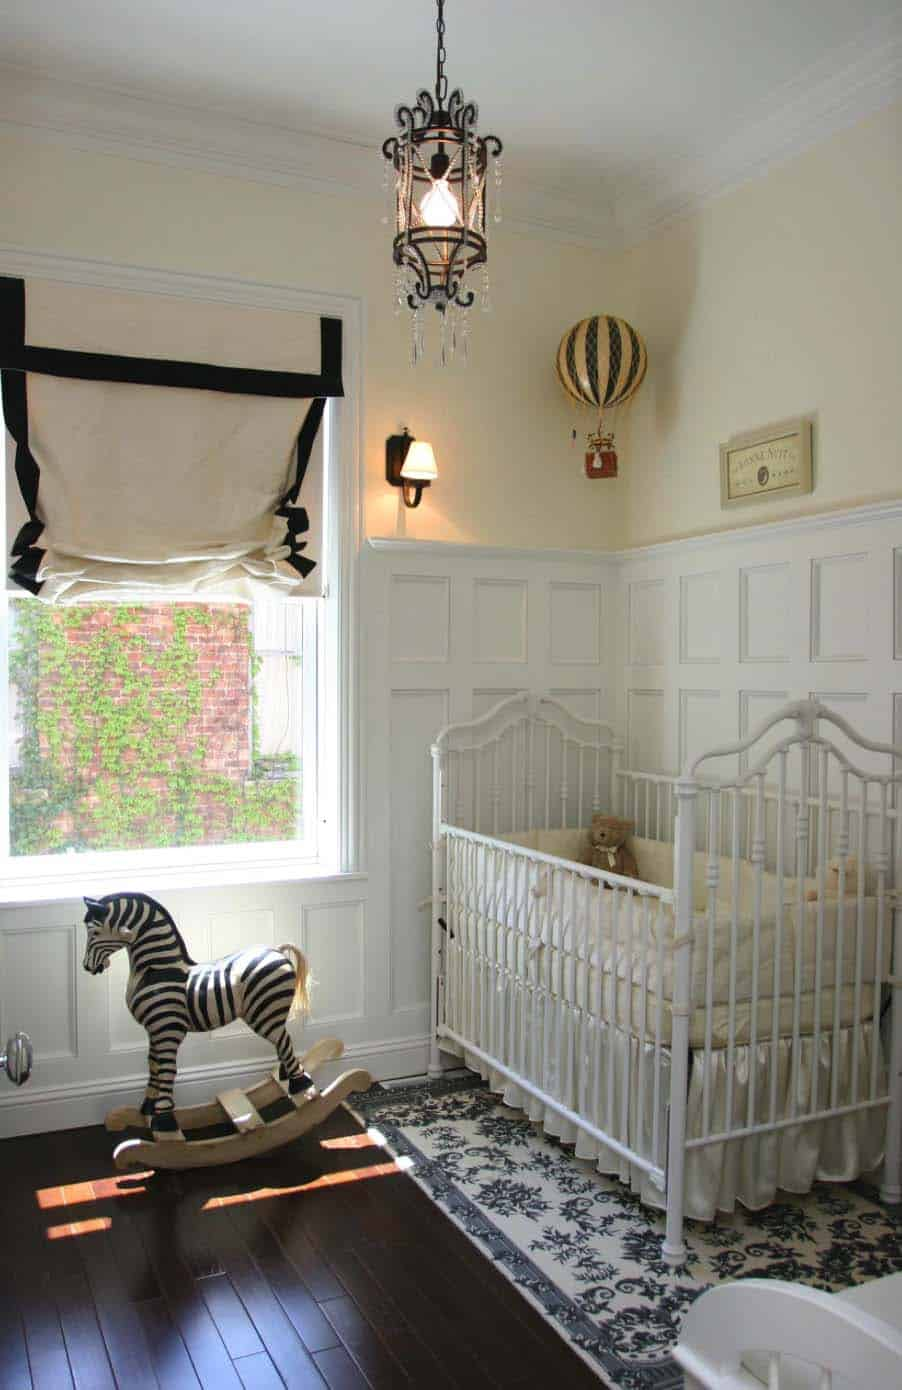 Stylish Nursery Decorating Ideas-40-1 Kindesign